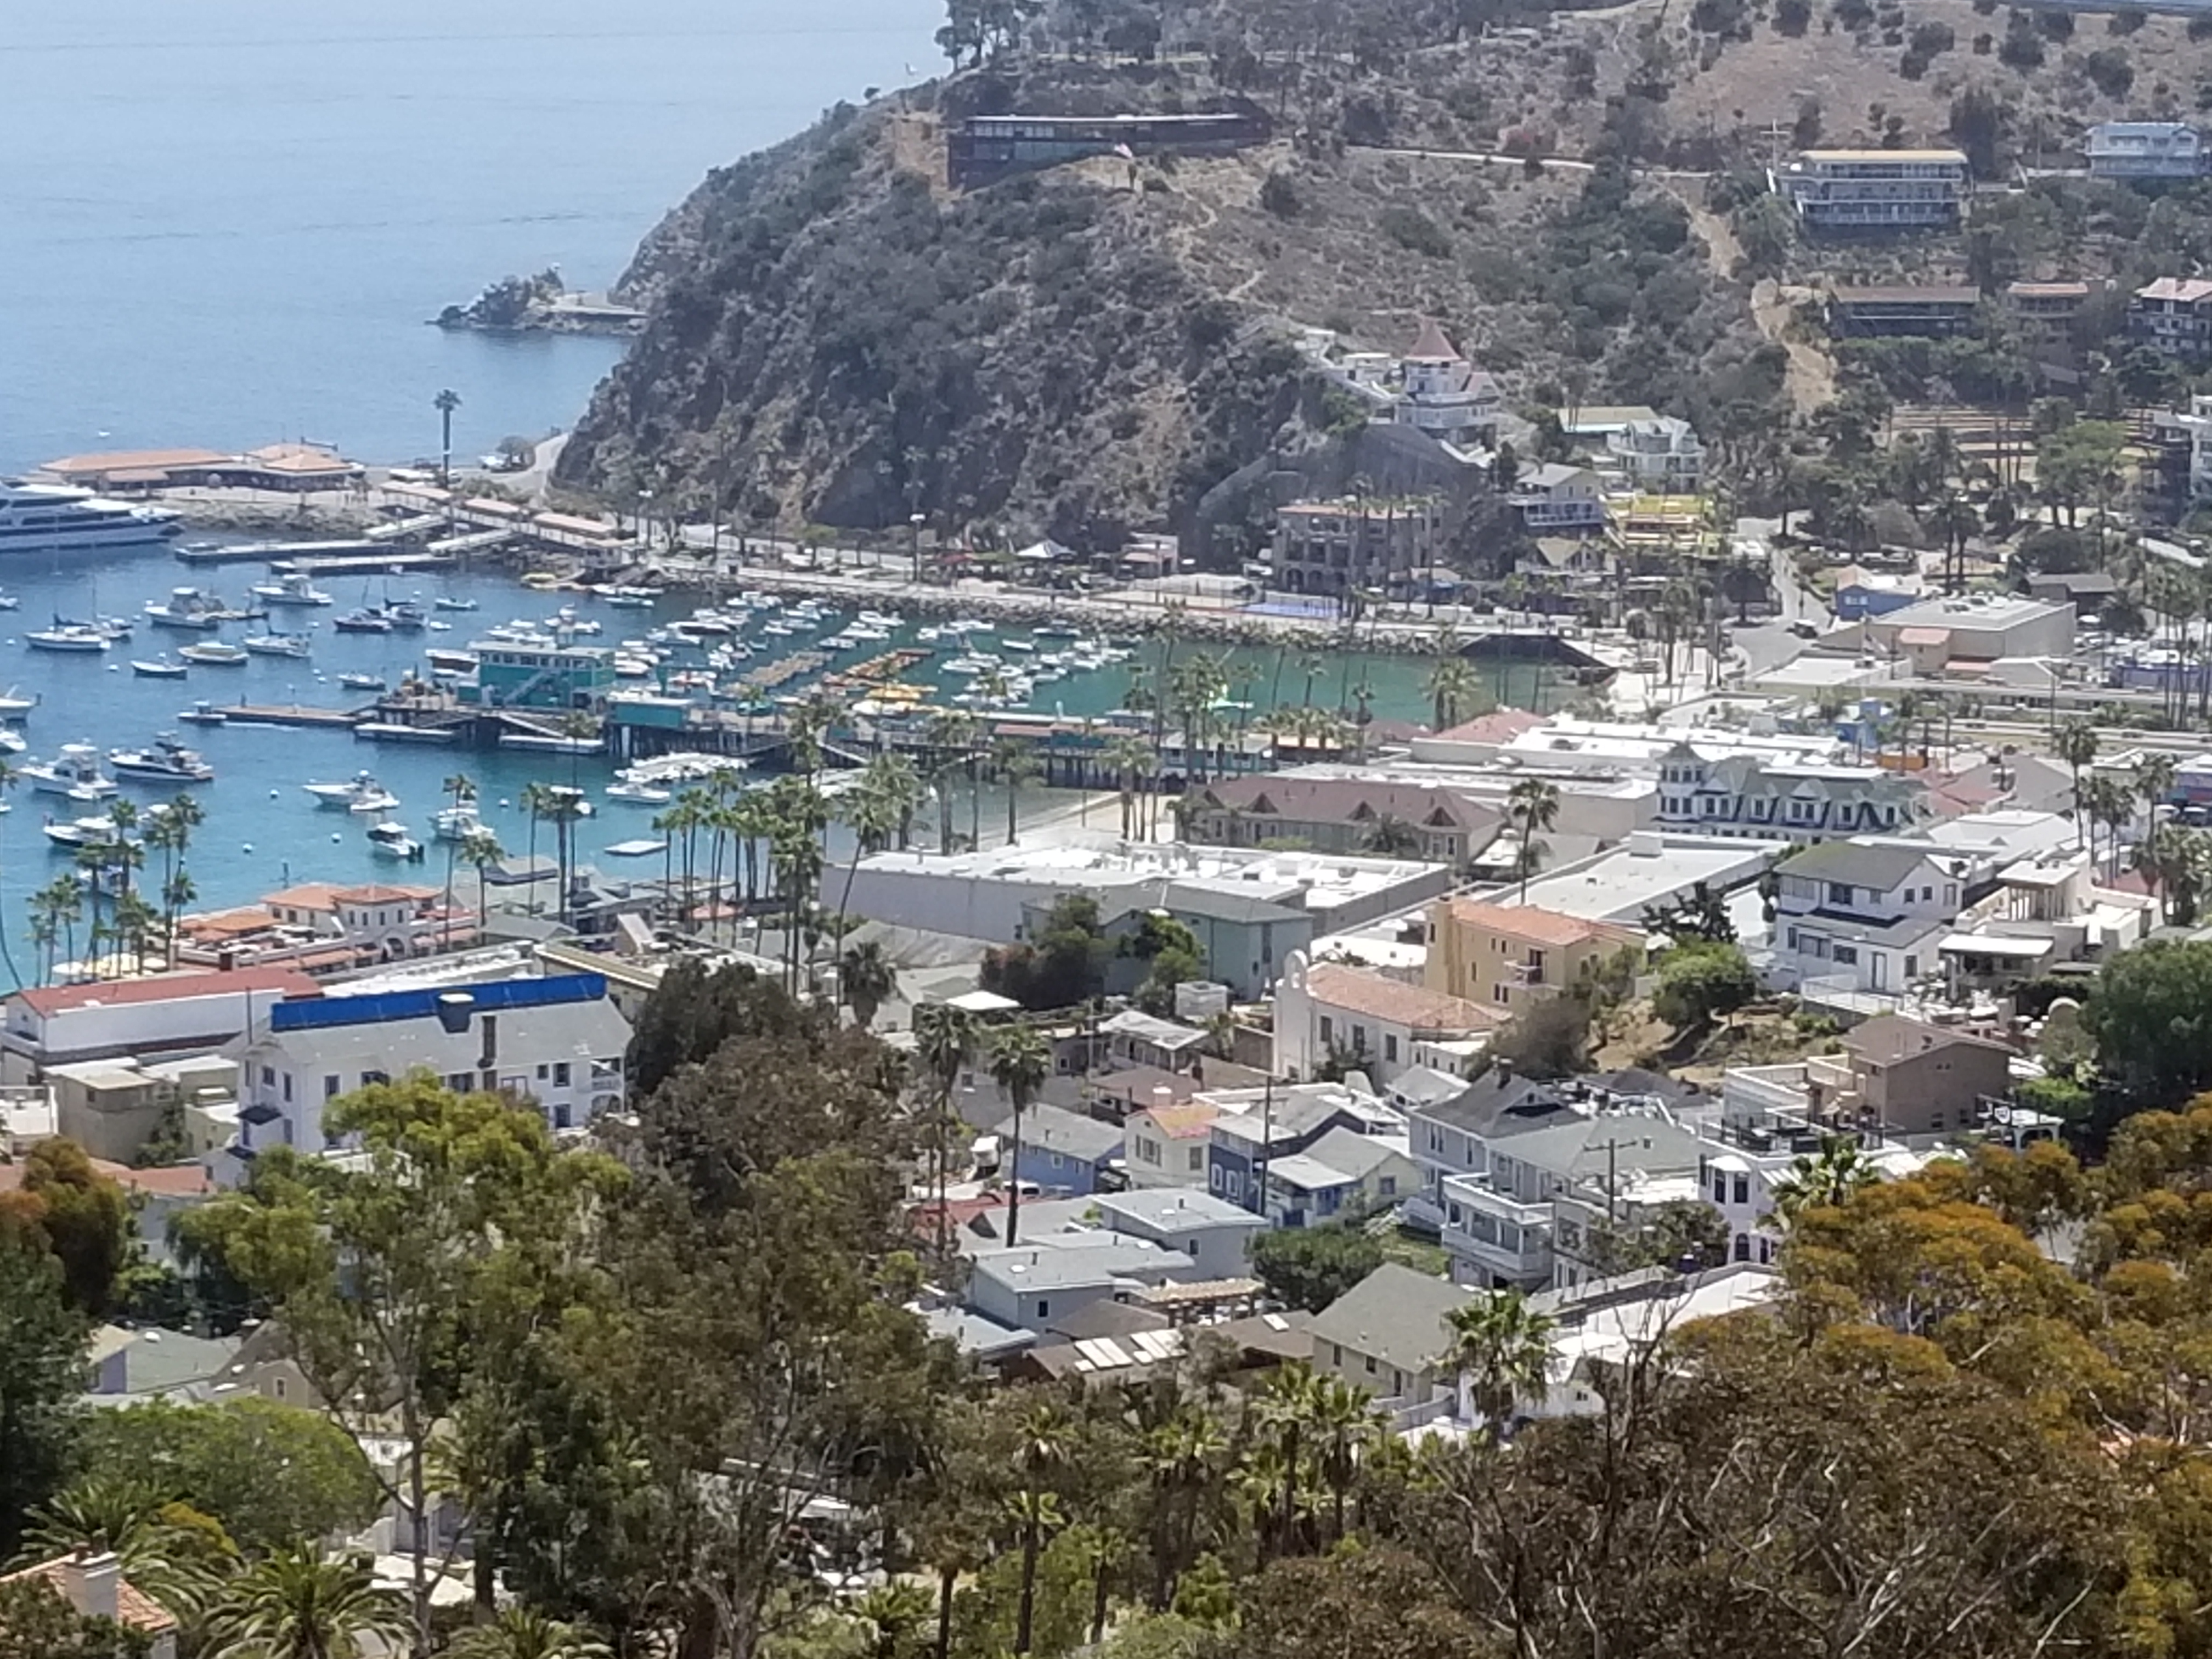 Catalina-Harbor-looking-east